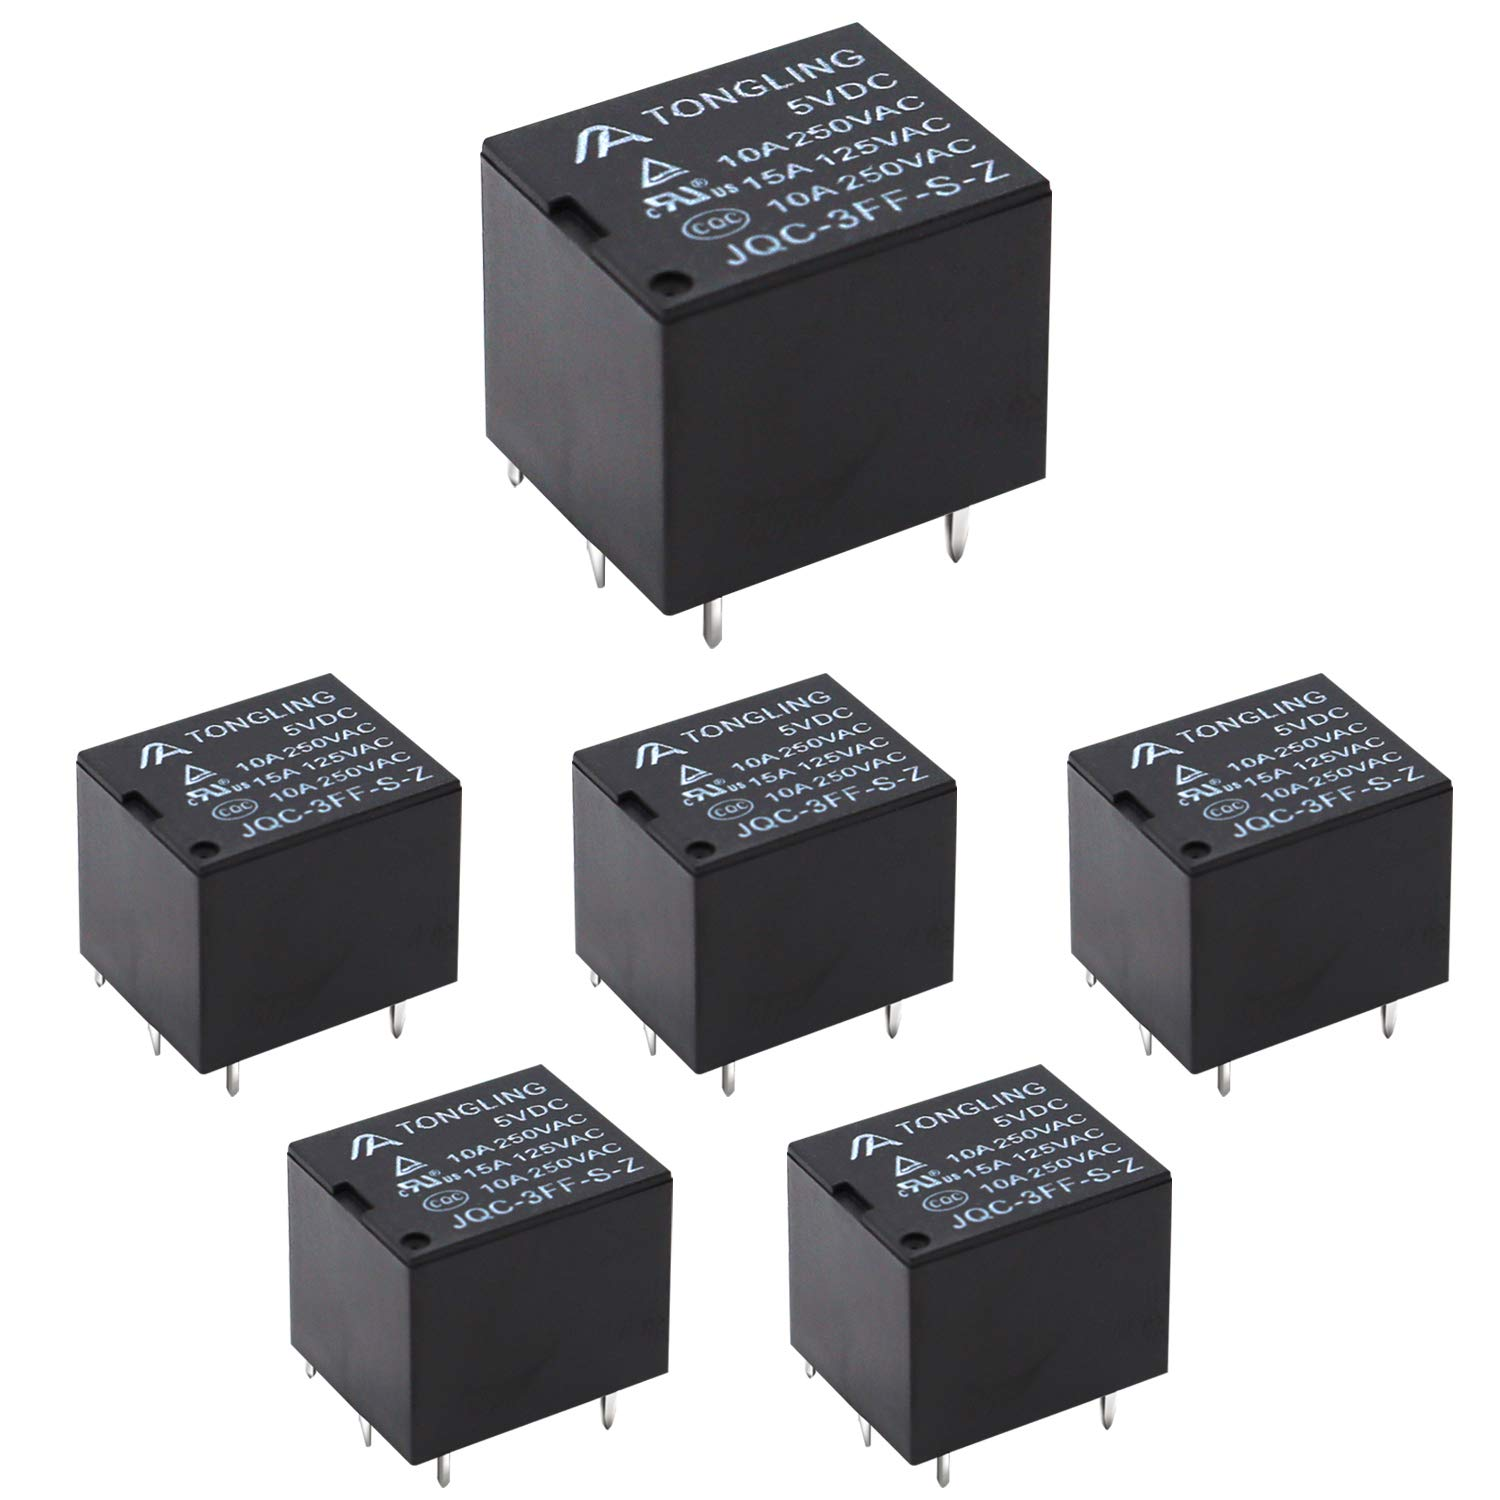 smseace 10PCS Household T73 DC 12V Black Mini 5 pin Small electromagnetic Relay Coil SPST Power PCB Plastic Relay Adjust Automatically Protection Electronic Equipmen JQC 3FF relays T73-BK-12V